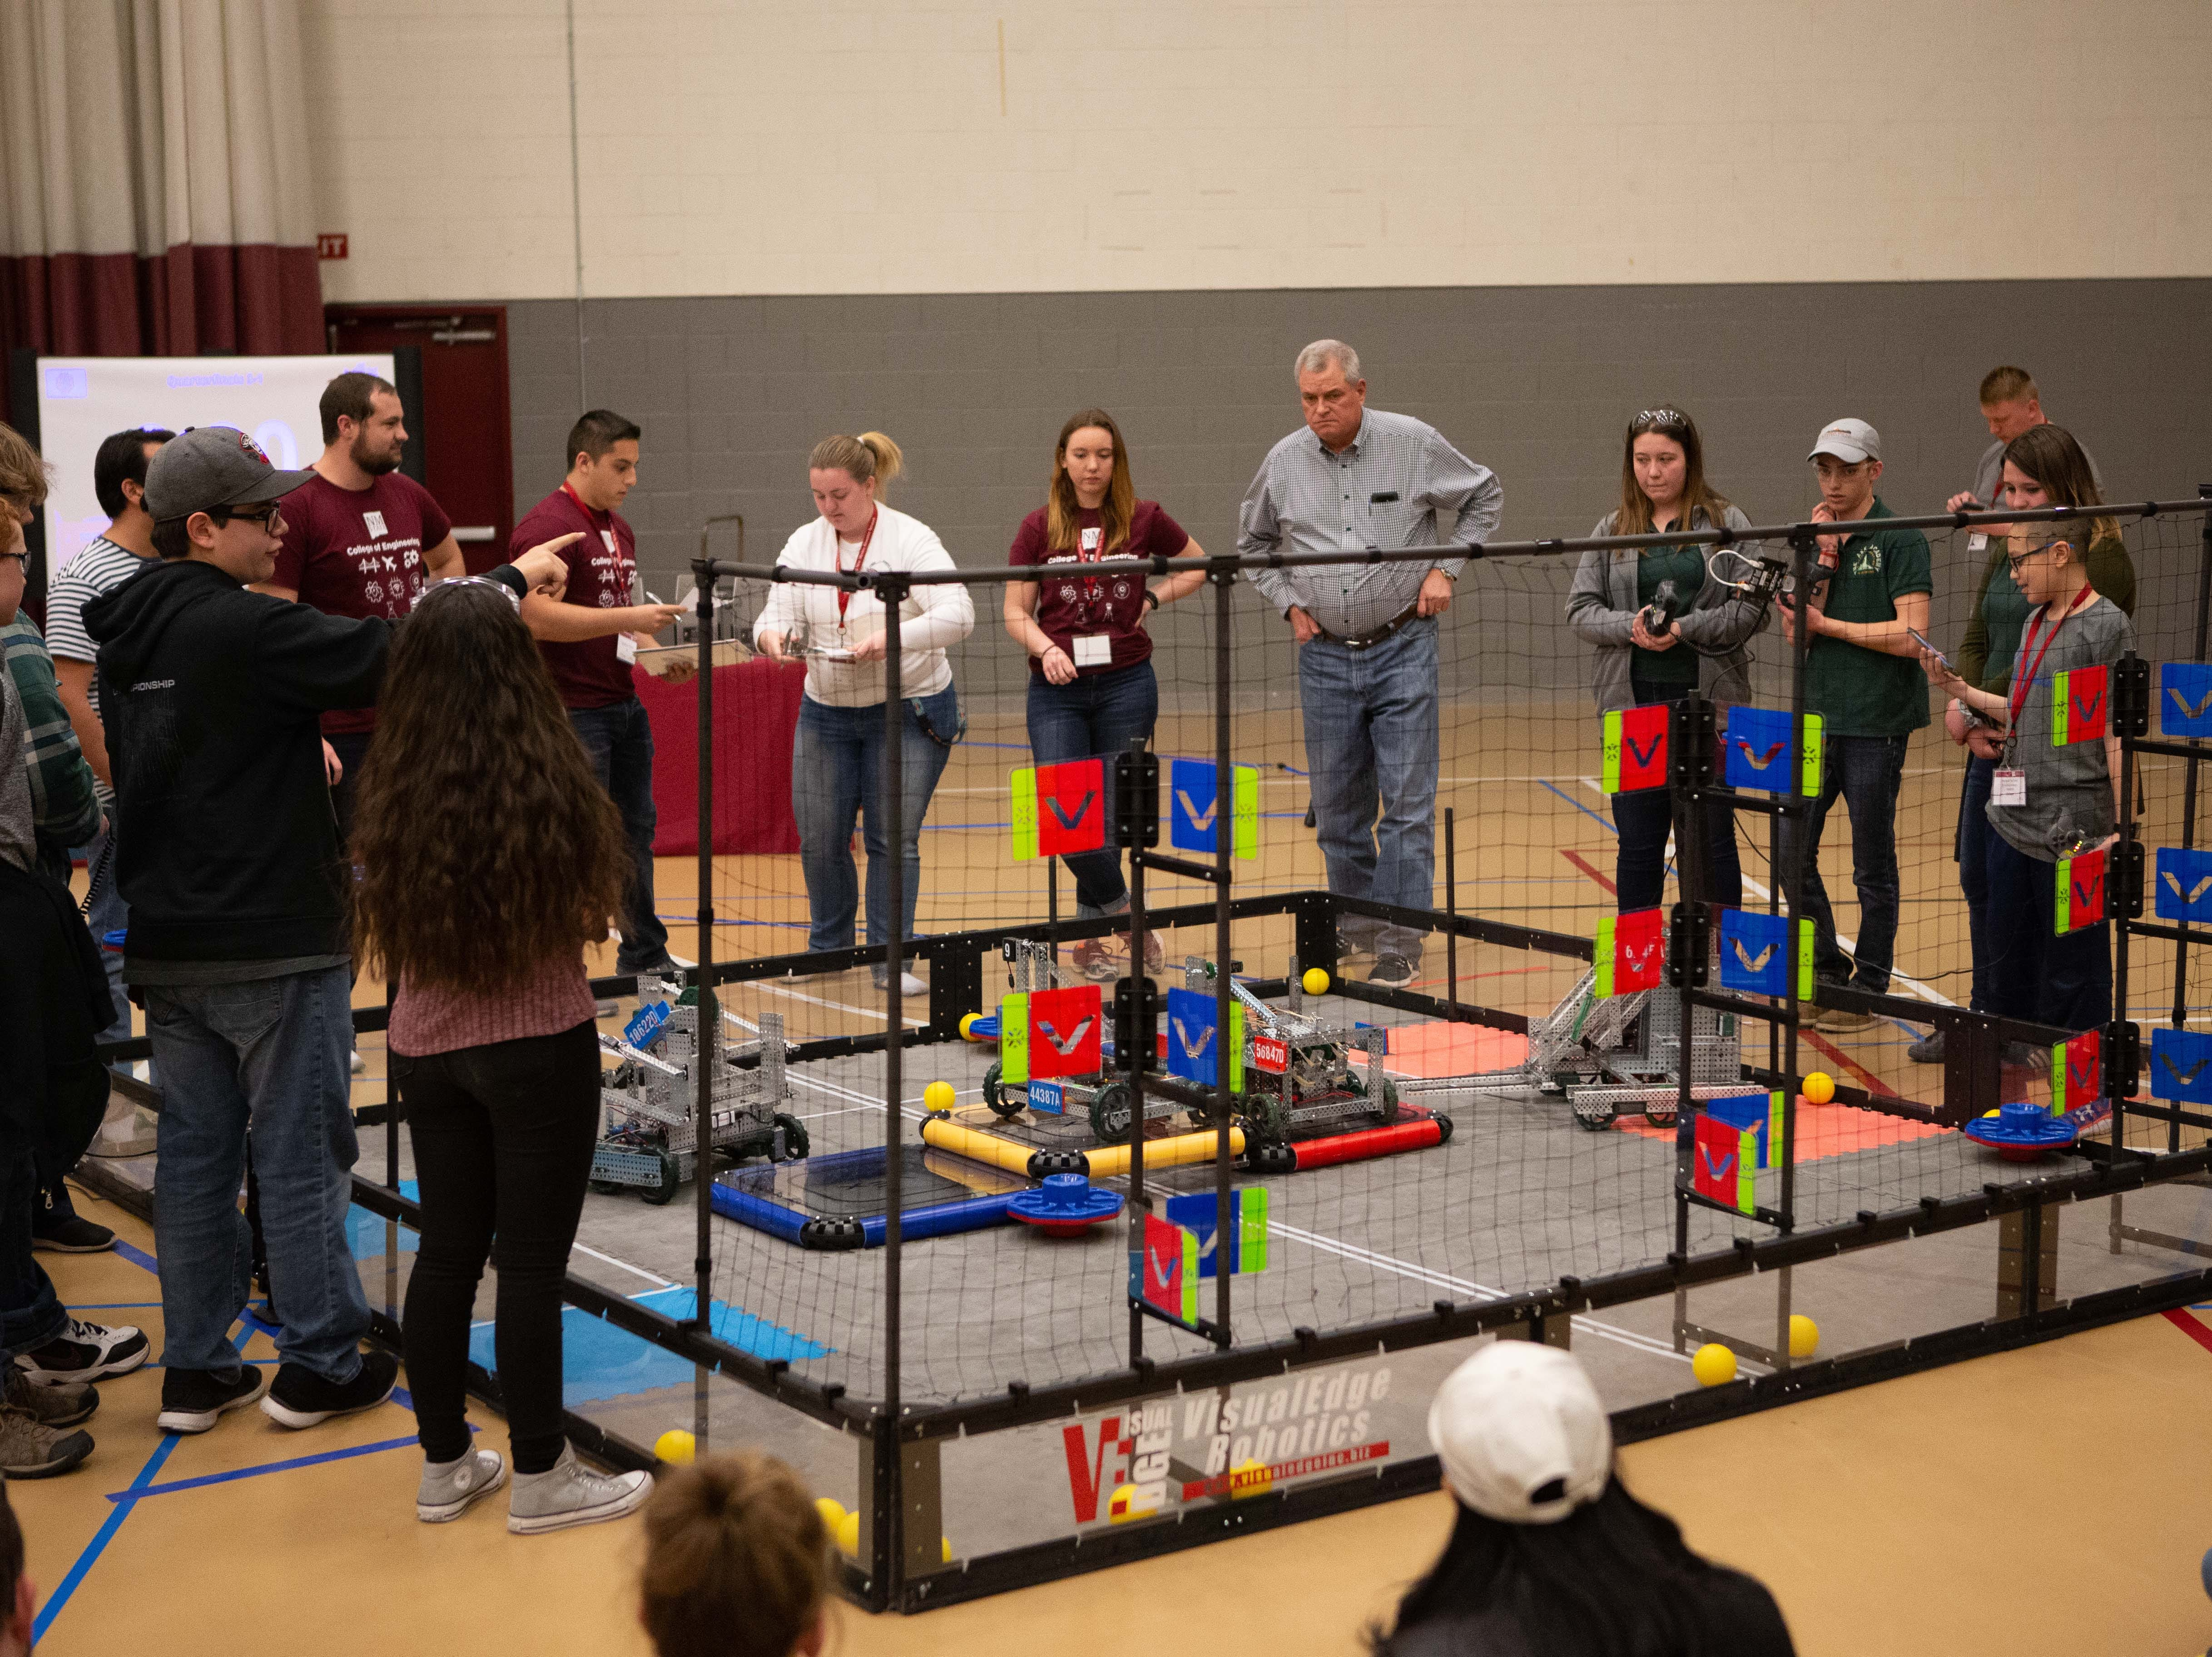 The VEX Robotics competition for elementary, middle and high school students held on the NMSU campus on February 16, 2019.